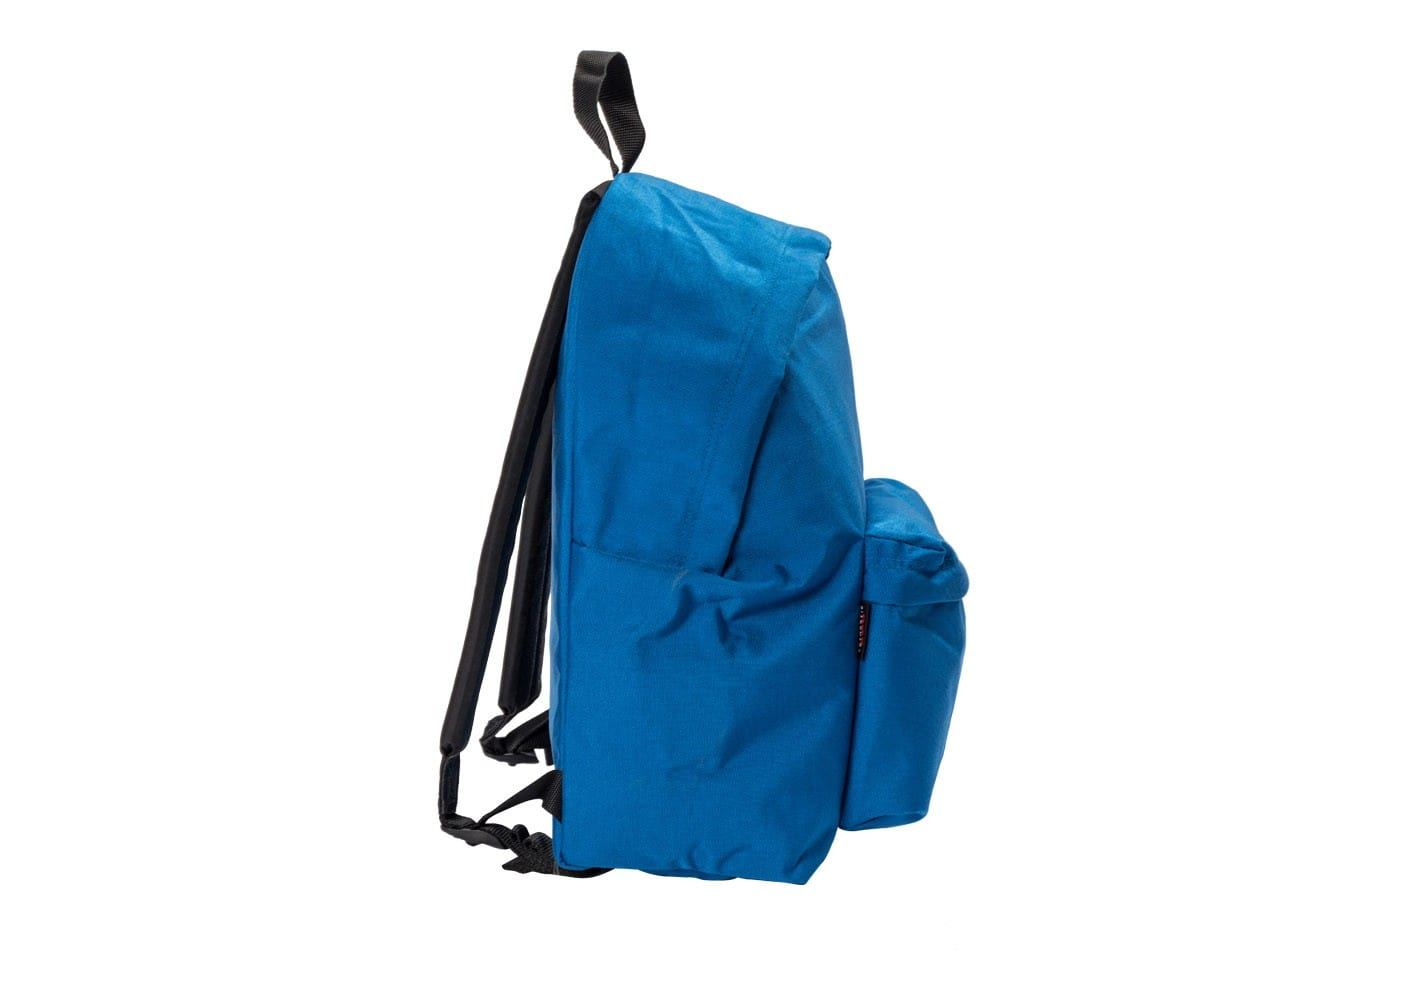 eastpak sac dos padded pak 39 r bleu sacs sacoches chausport. Black Bedroom Furniture Sets. Home Design Ideas